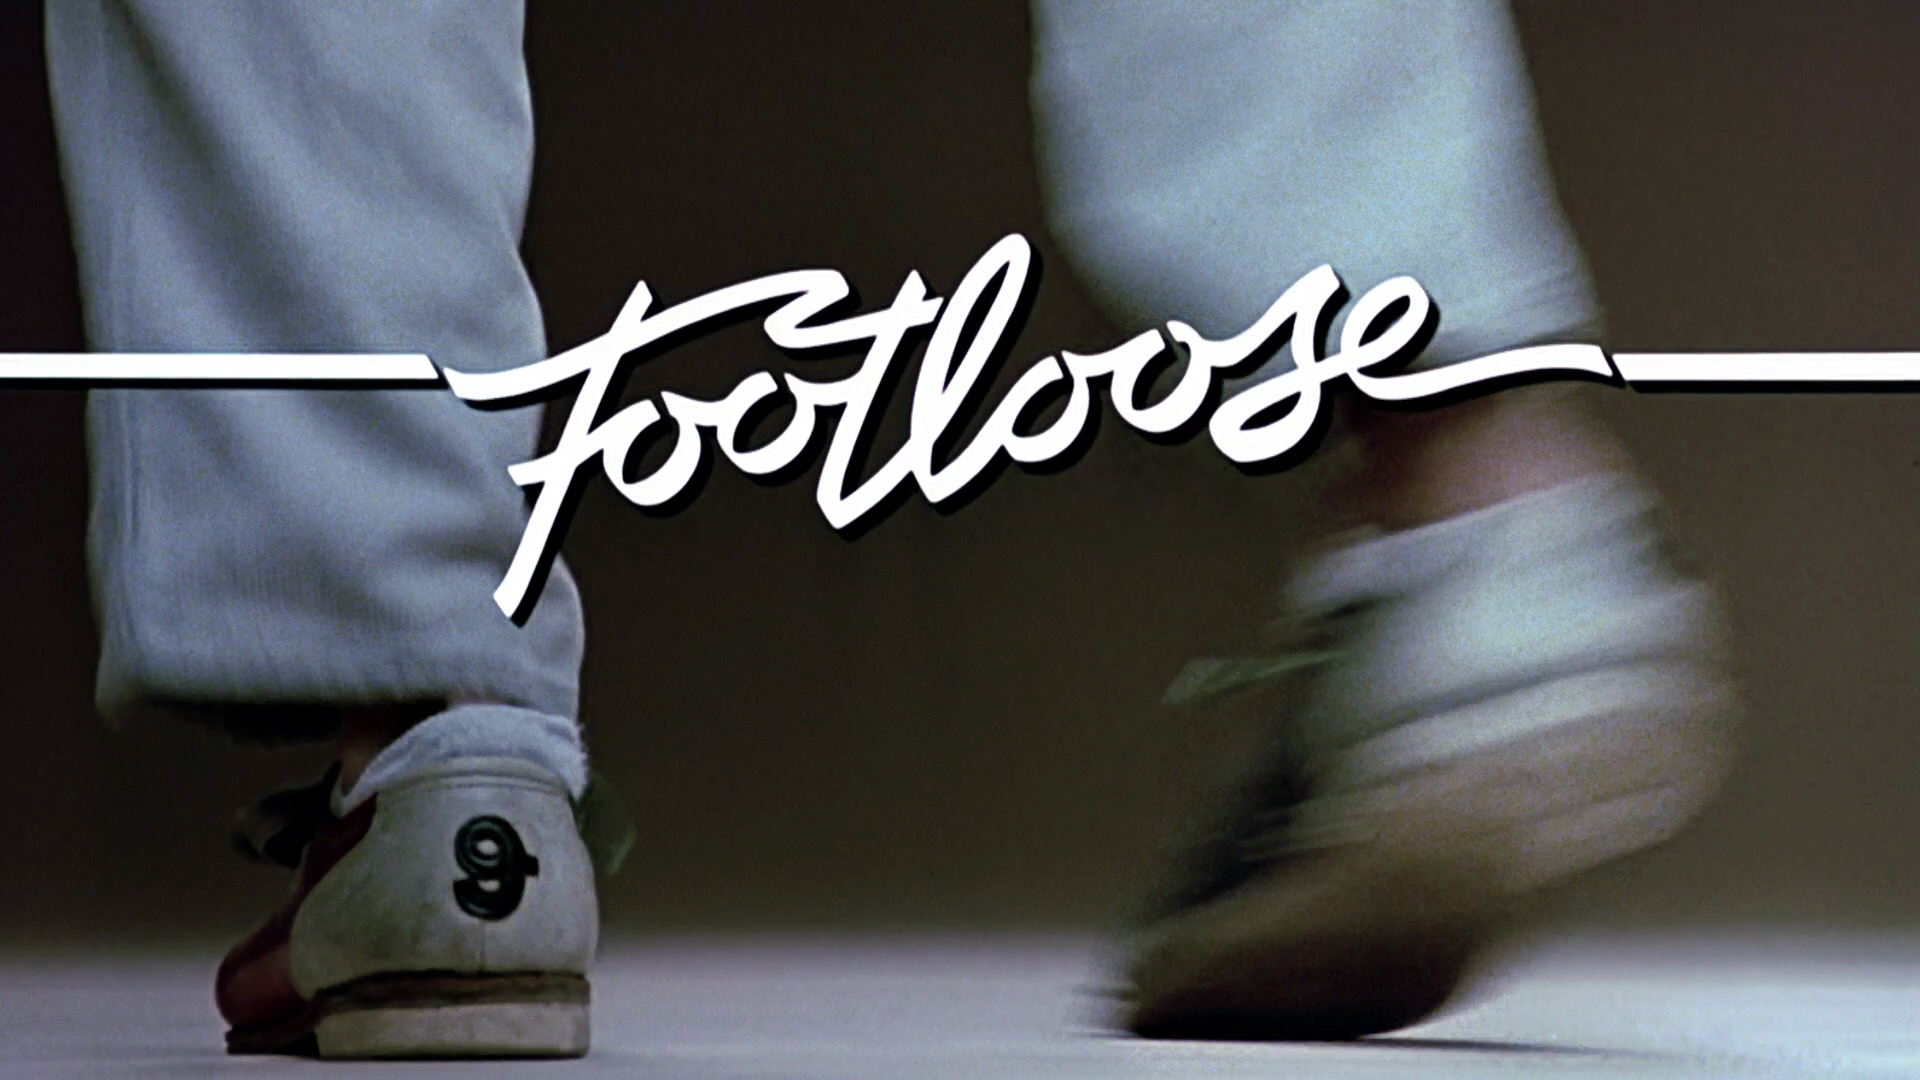 footloose-movie-screencaps.com-.jpg